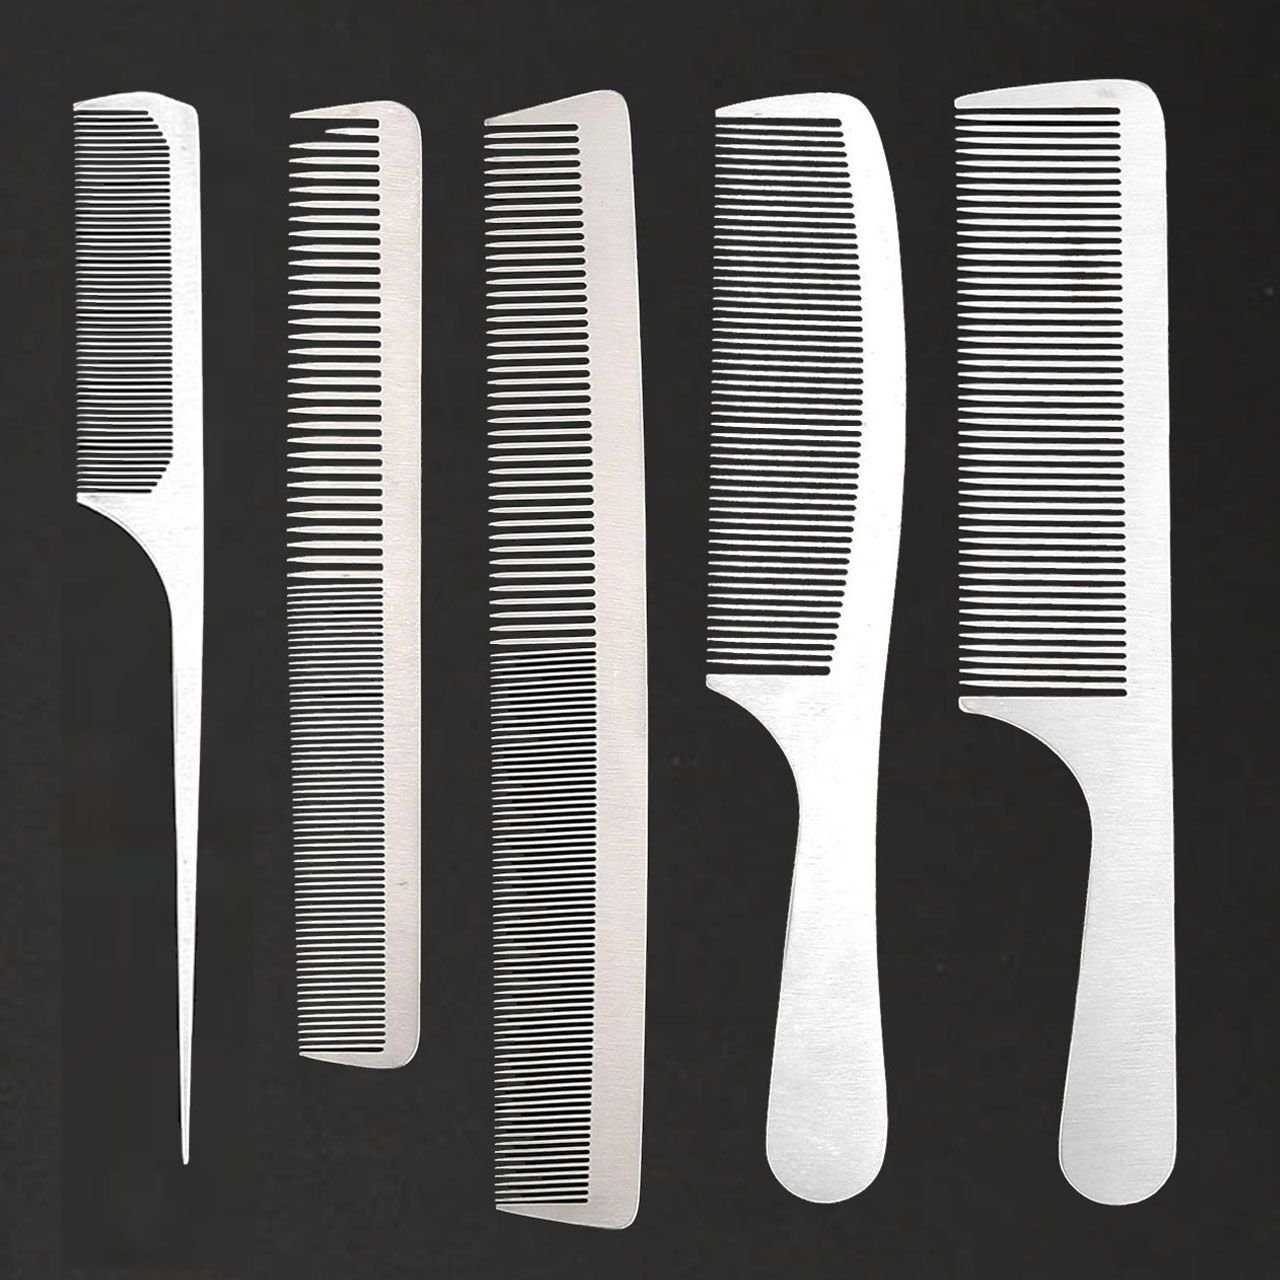 CCbeauty 5-Packs Metal Barber Comb Set Pack for Men & Women,Professional Hairdressing Salon Combs Hair cutting Tool Detangler Comb with Leather Bag by CCbeauty